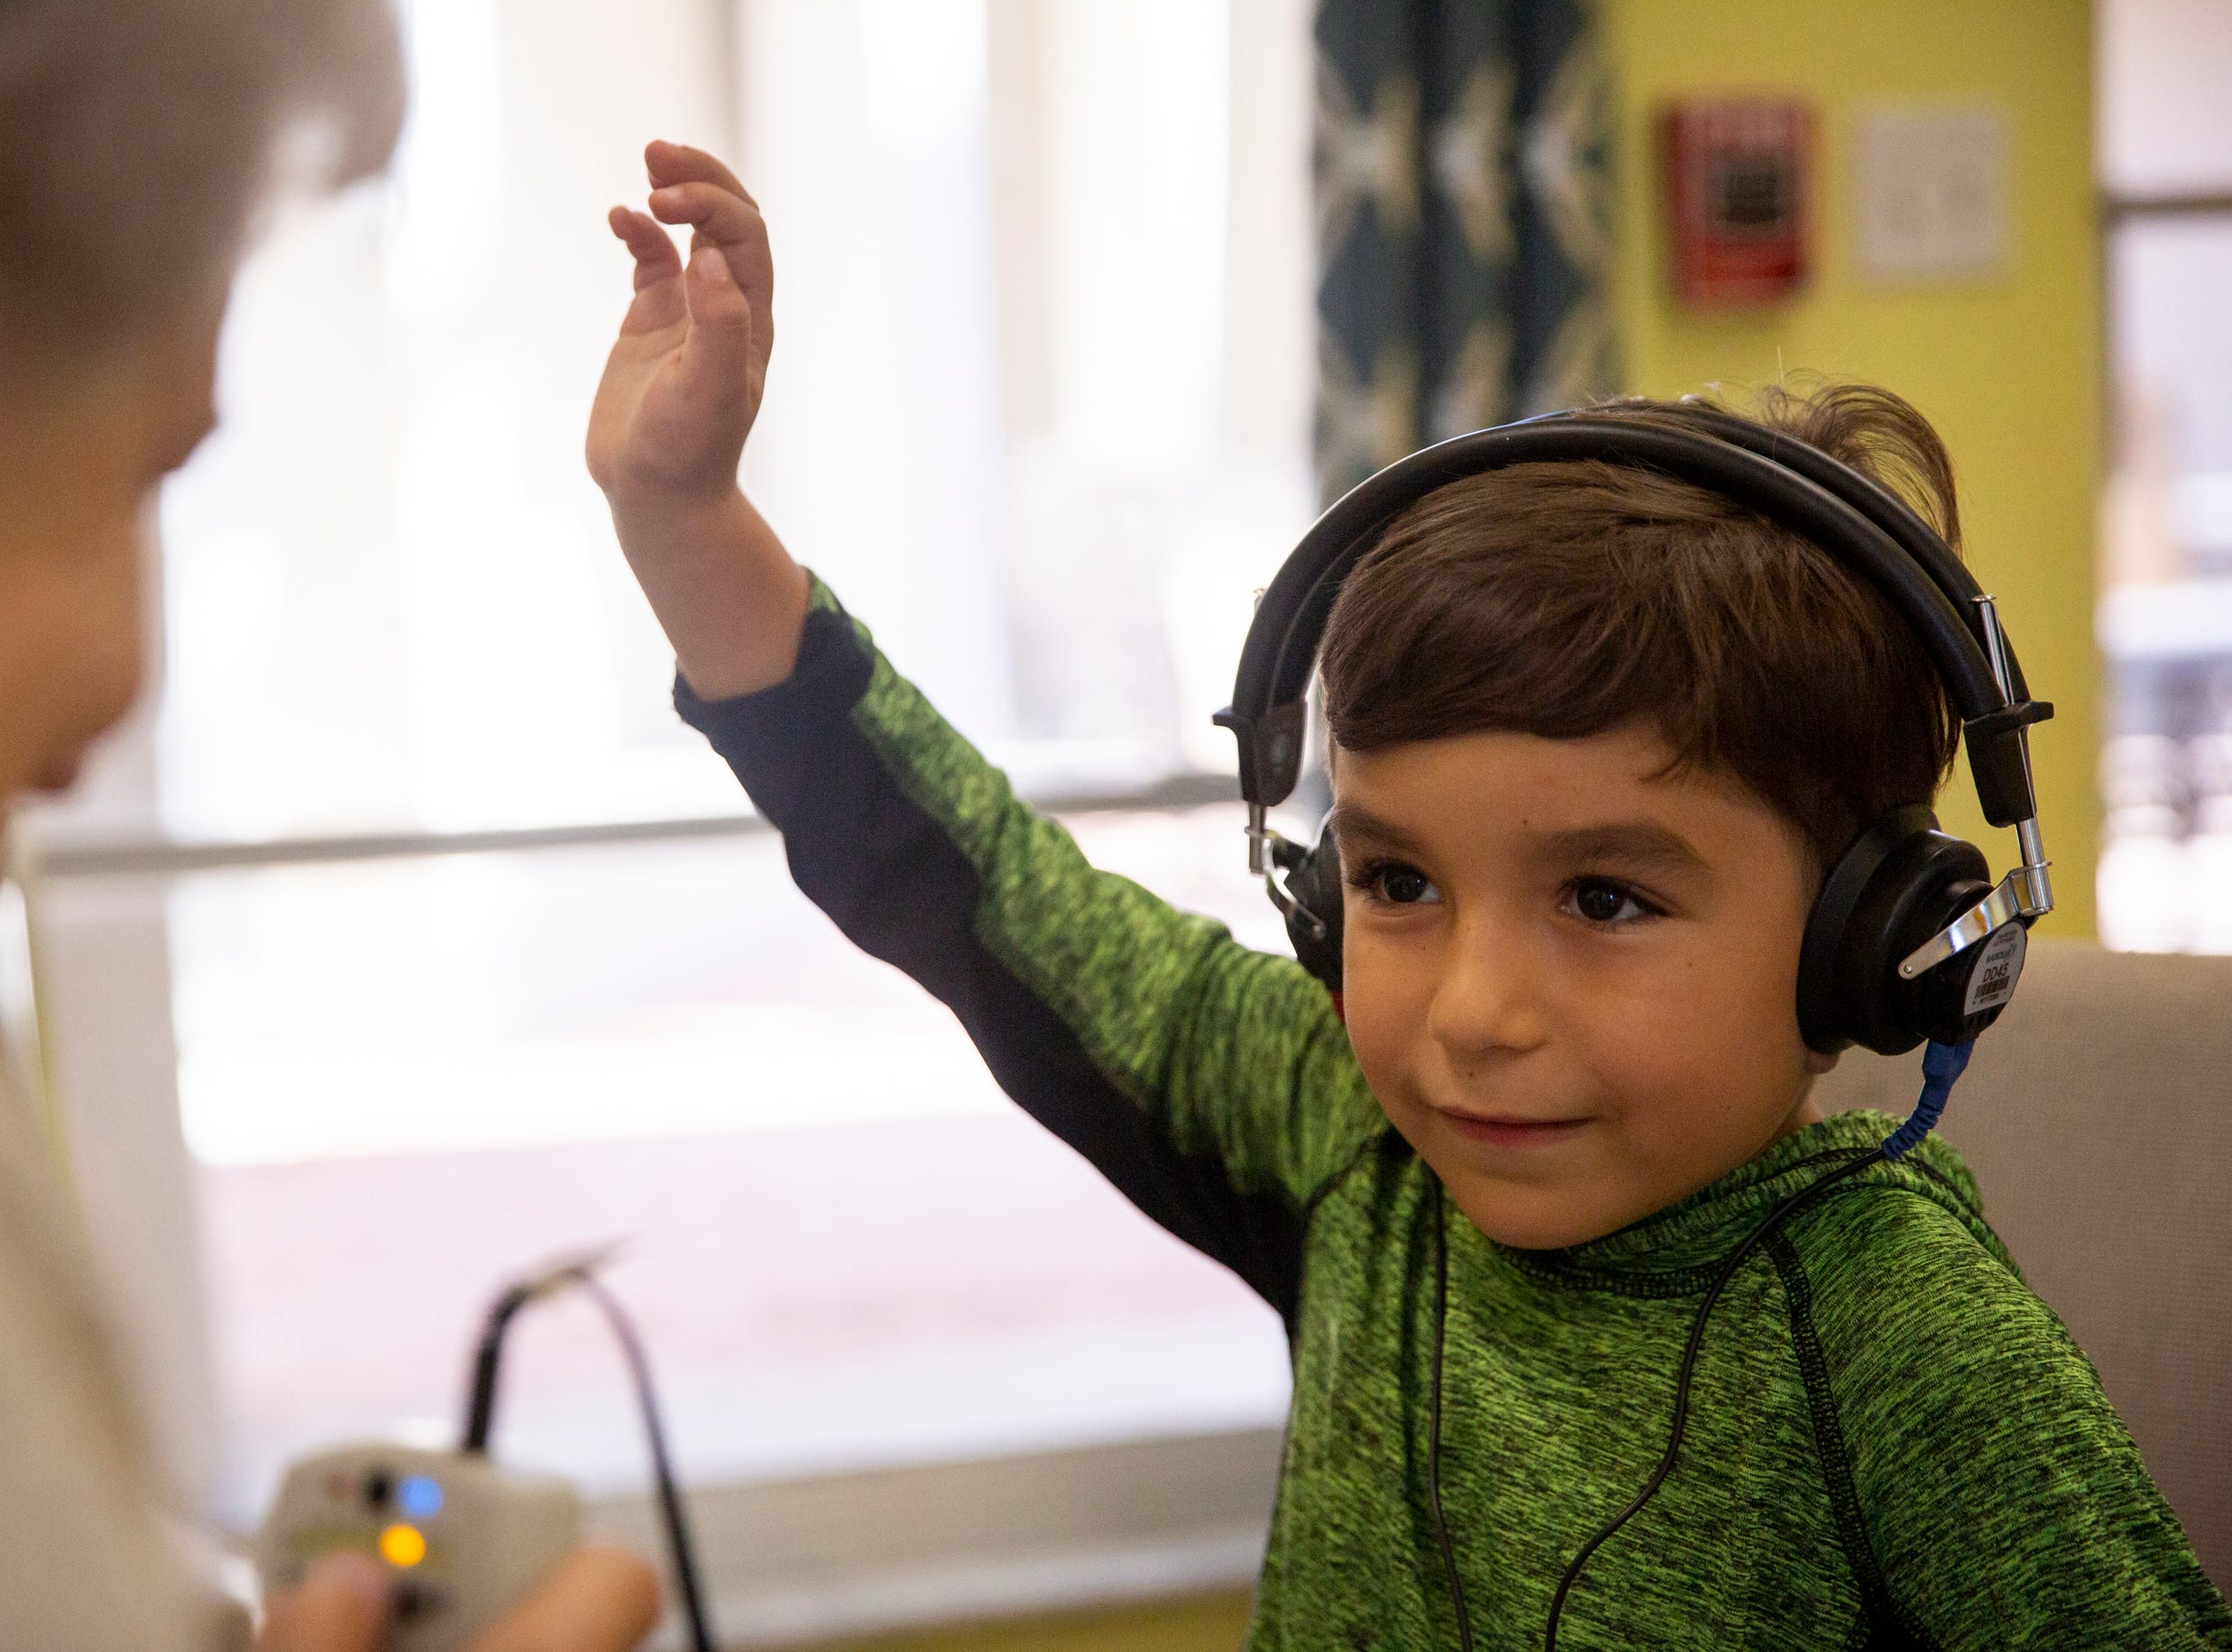 Daniel Dremi, 5, raises his hand to signal that he hears a noise coming through his headphones while he gets his hearing tested at Grace Lutheran Preschool in Naples on Friday, April 12, 2019.